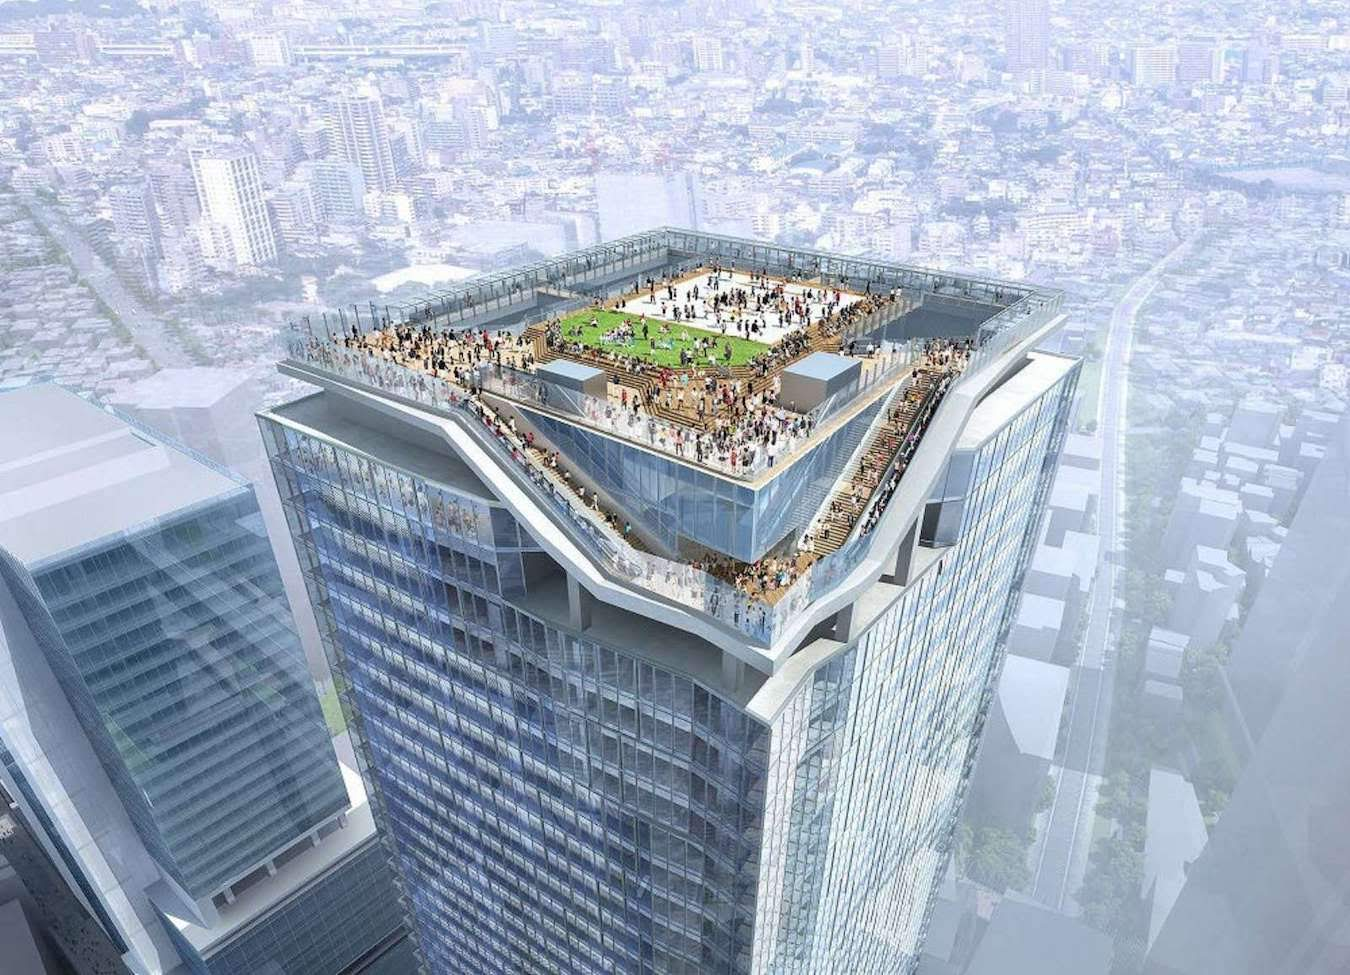 Concept art showing the design of Shibuya's 230-meter observation deck.